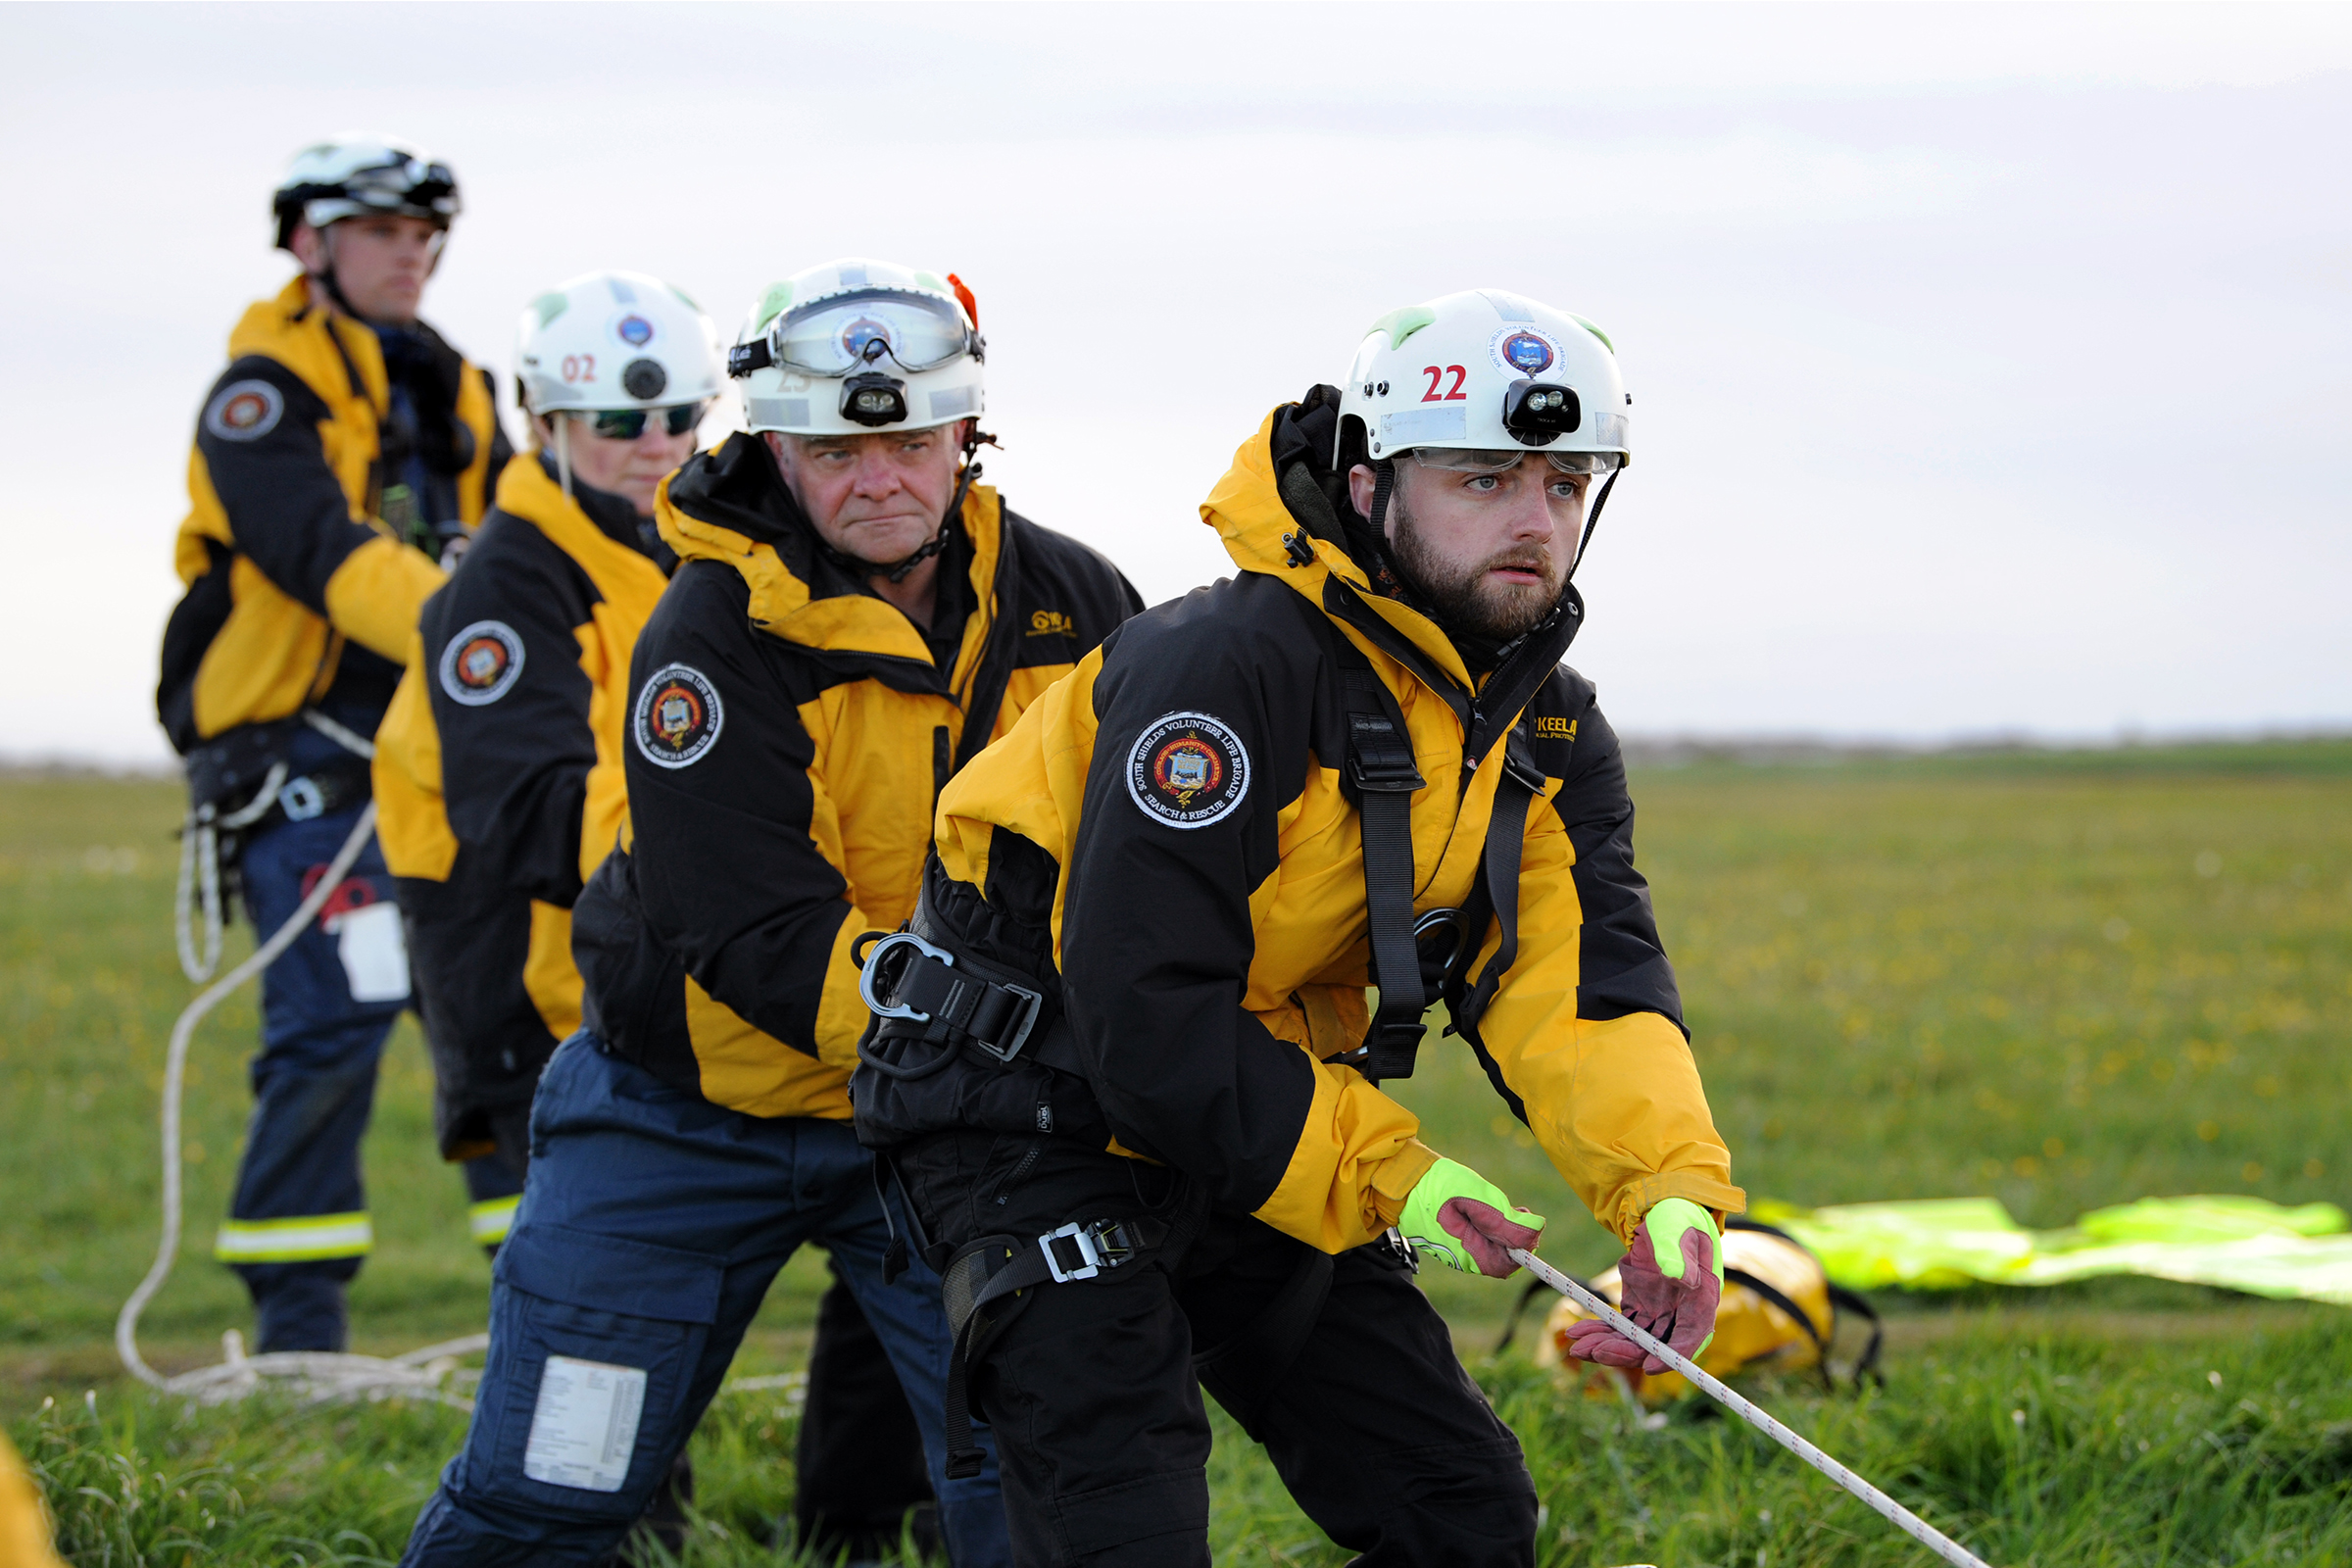 South Shields Volunteer Life Brigade (SSVLB)  - cliff rescue training at Manhaven Bay, South Shields.